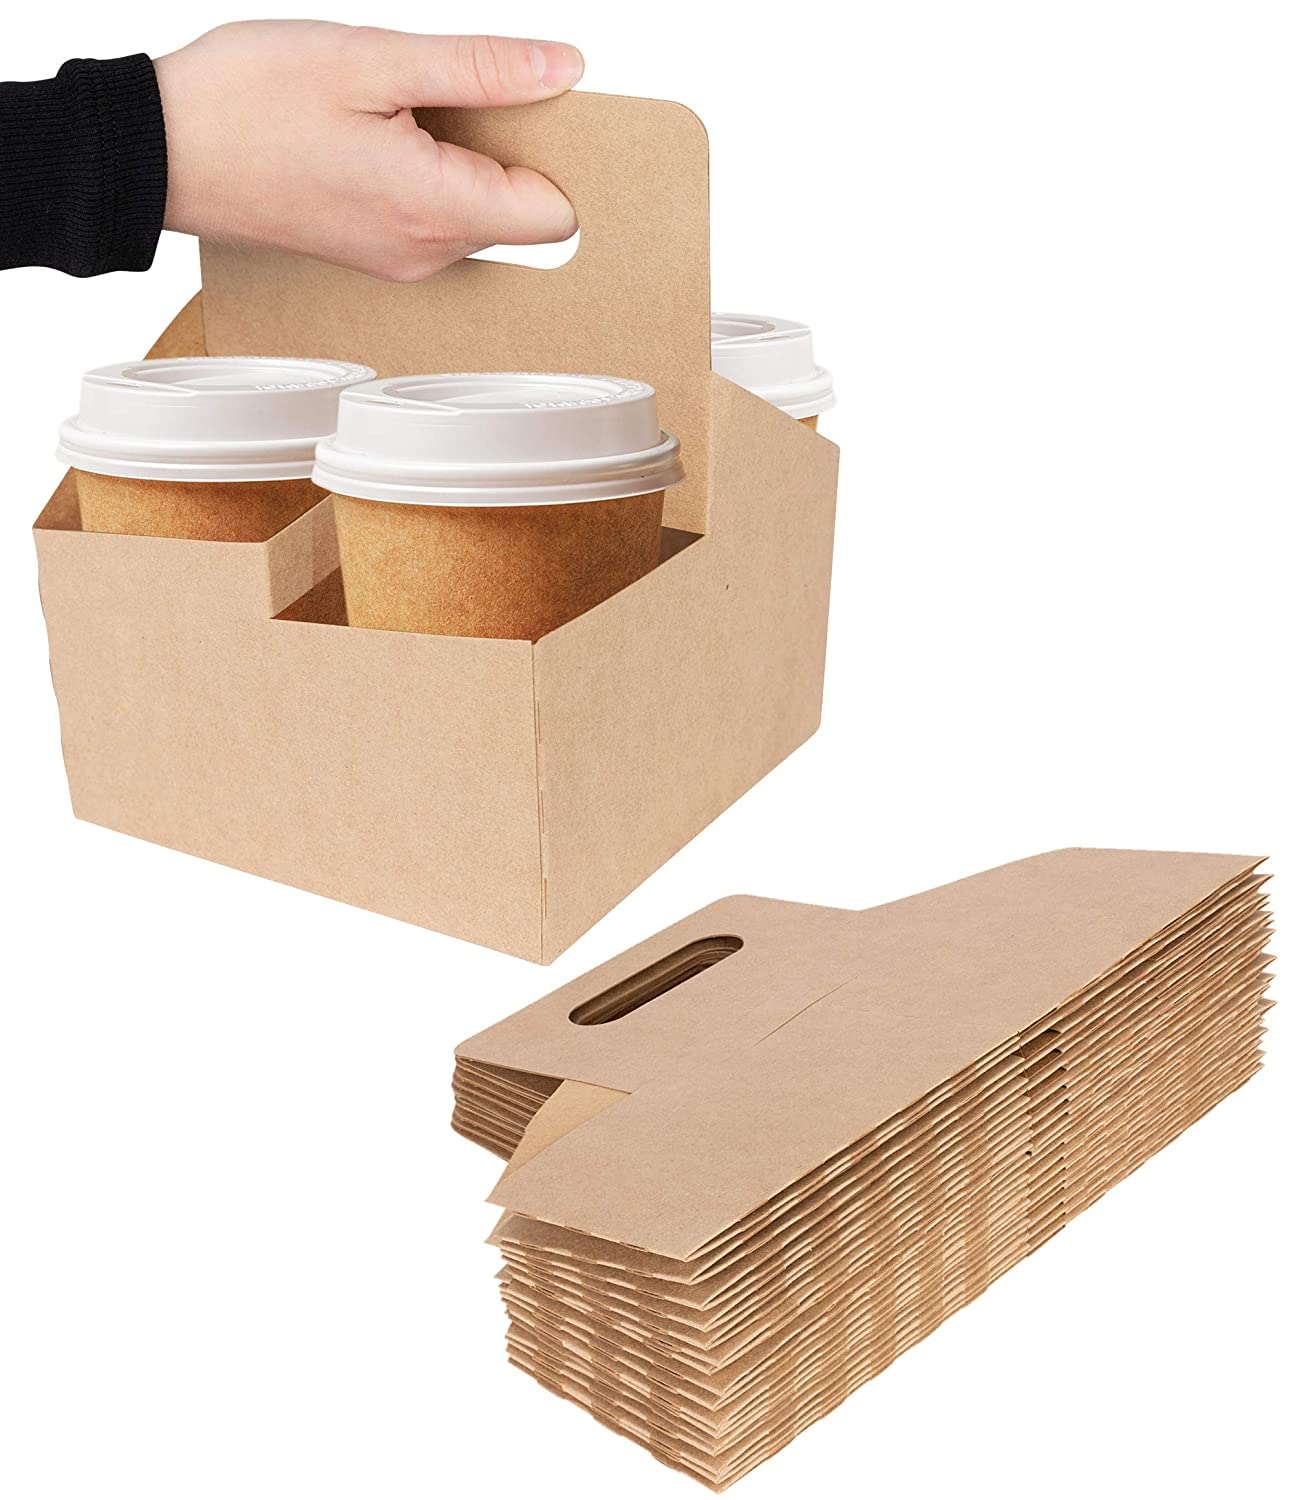 4 Cup Disposable Drink Carrier with Handle (15 Count) - Kraft Paperboard Cup Holder - Disposable Cup Holder for Hot or Cold Drinks - to Go Coffee Cup Holder for Food Delivery Service, Uber Eats